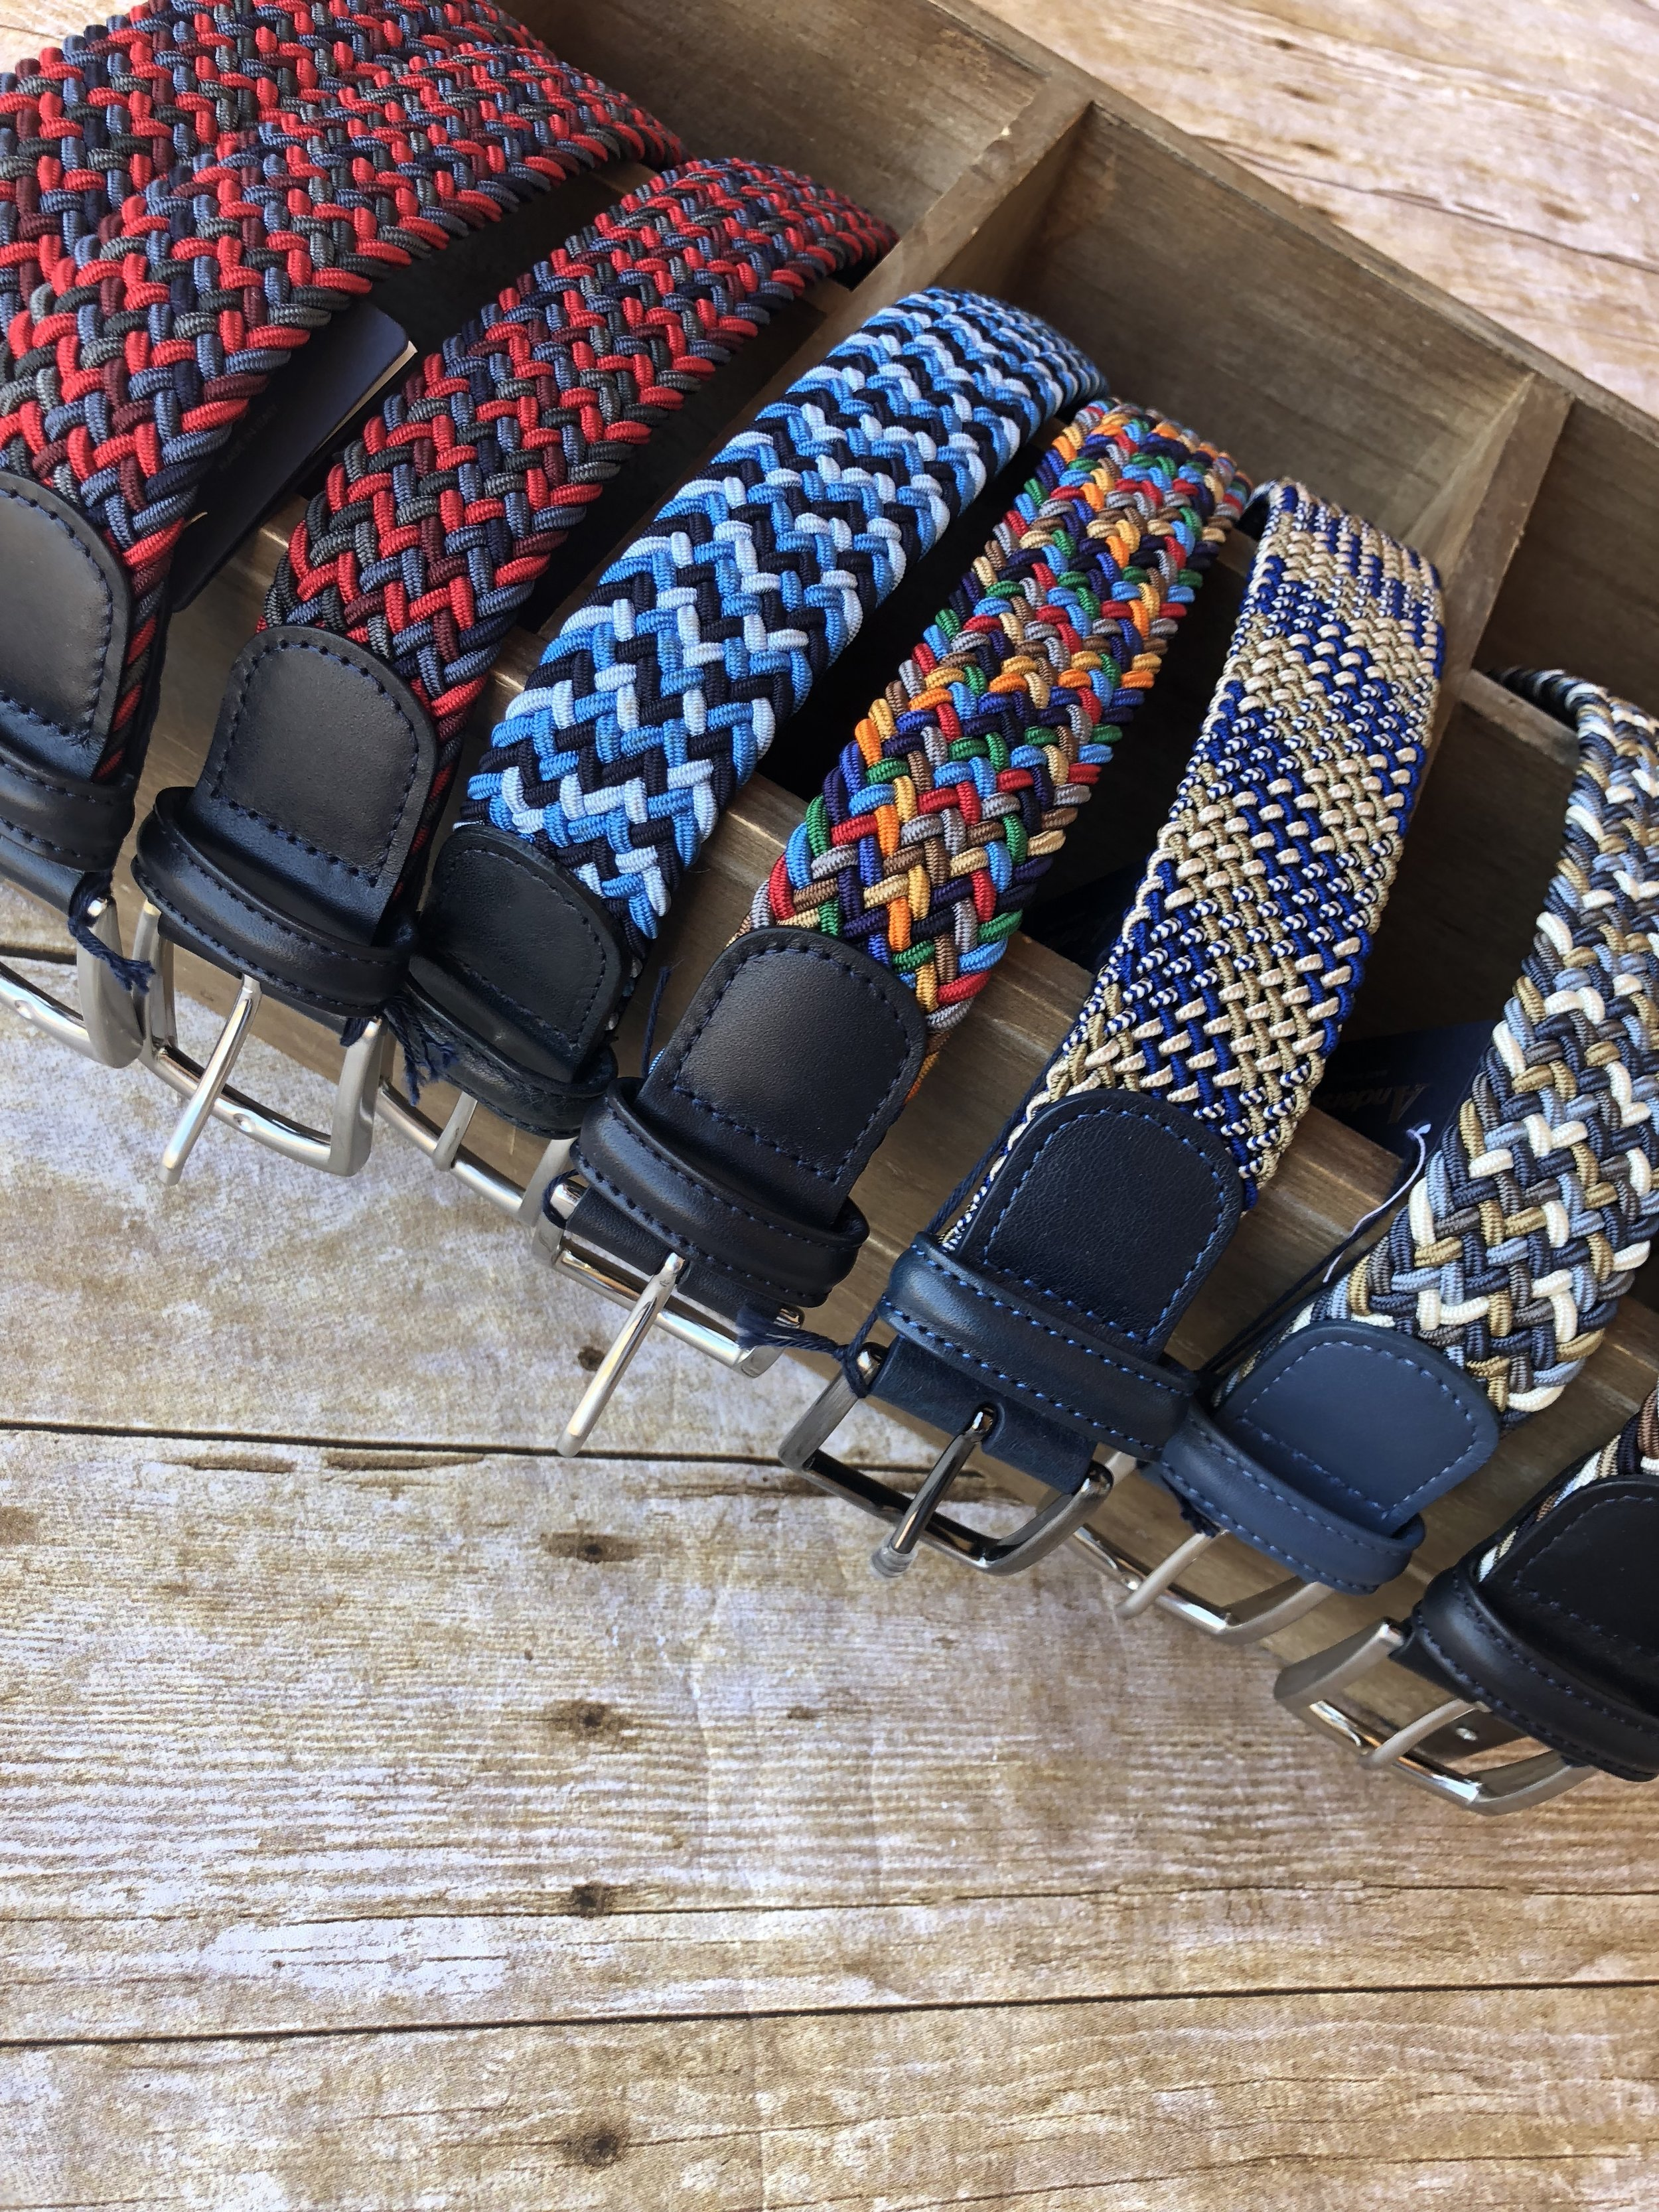 mens-colorful-belts.JPG